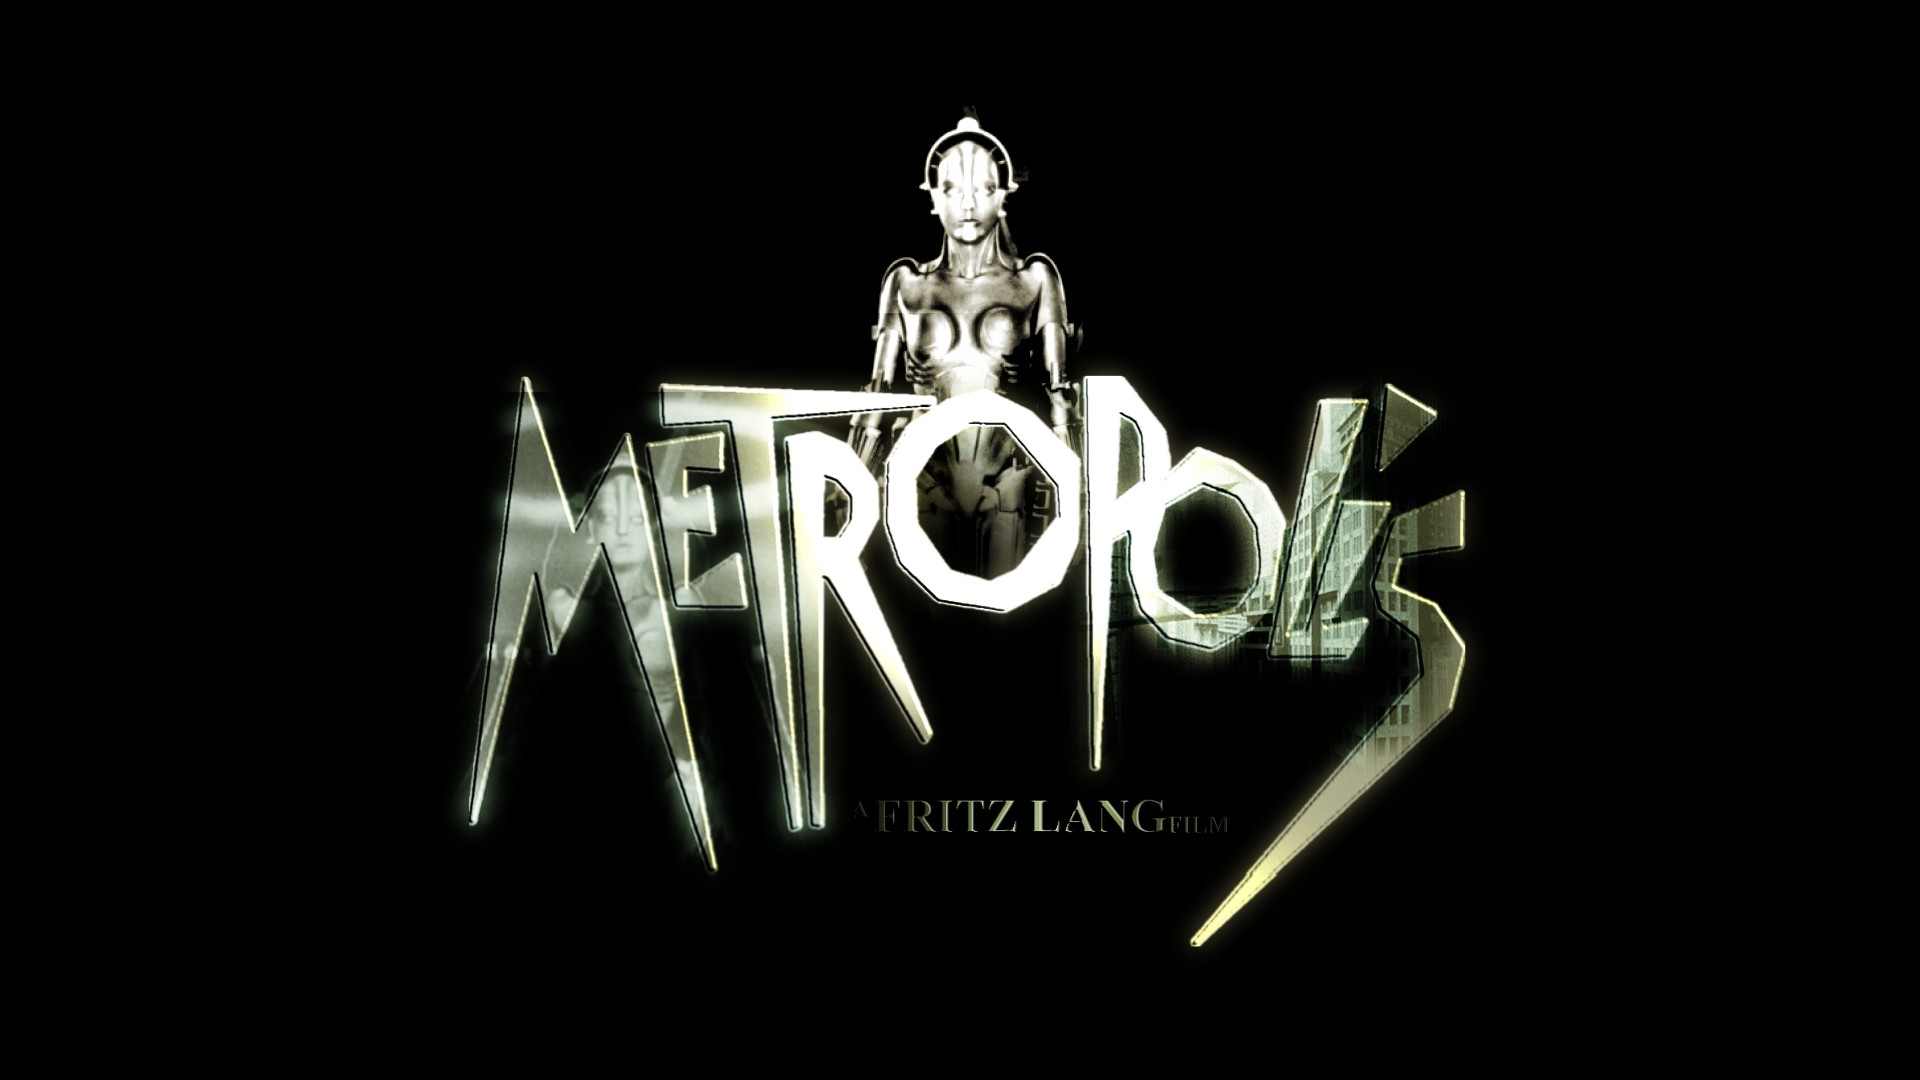 Res: 1920x1080, Metropolis images Metropolis HD wallpaper and background photos